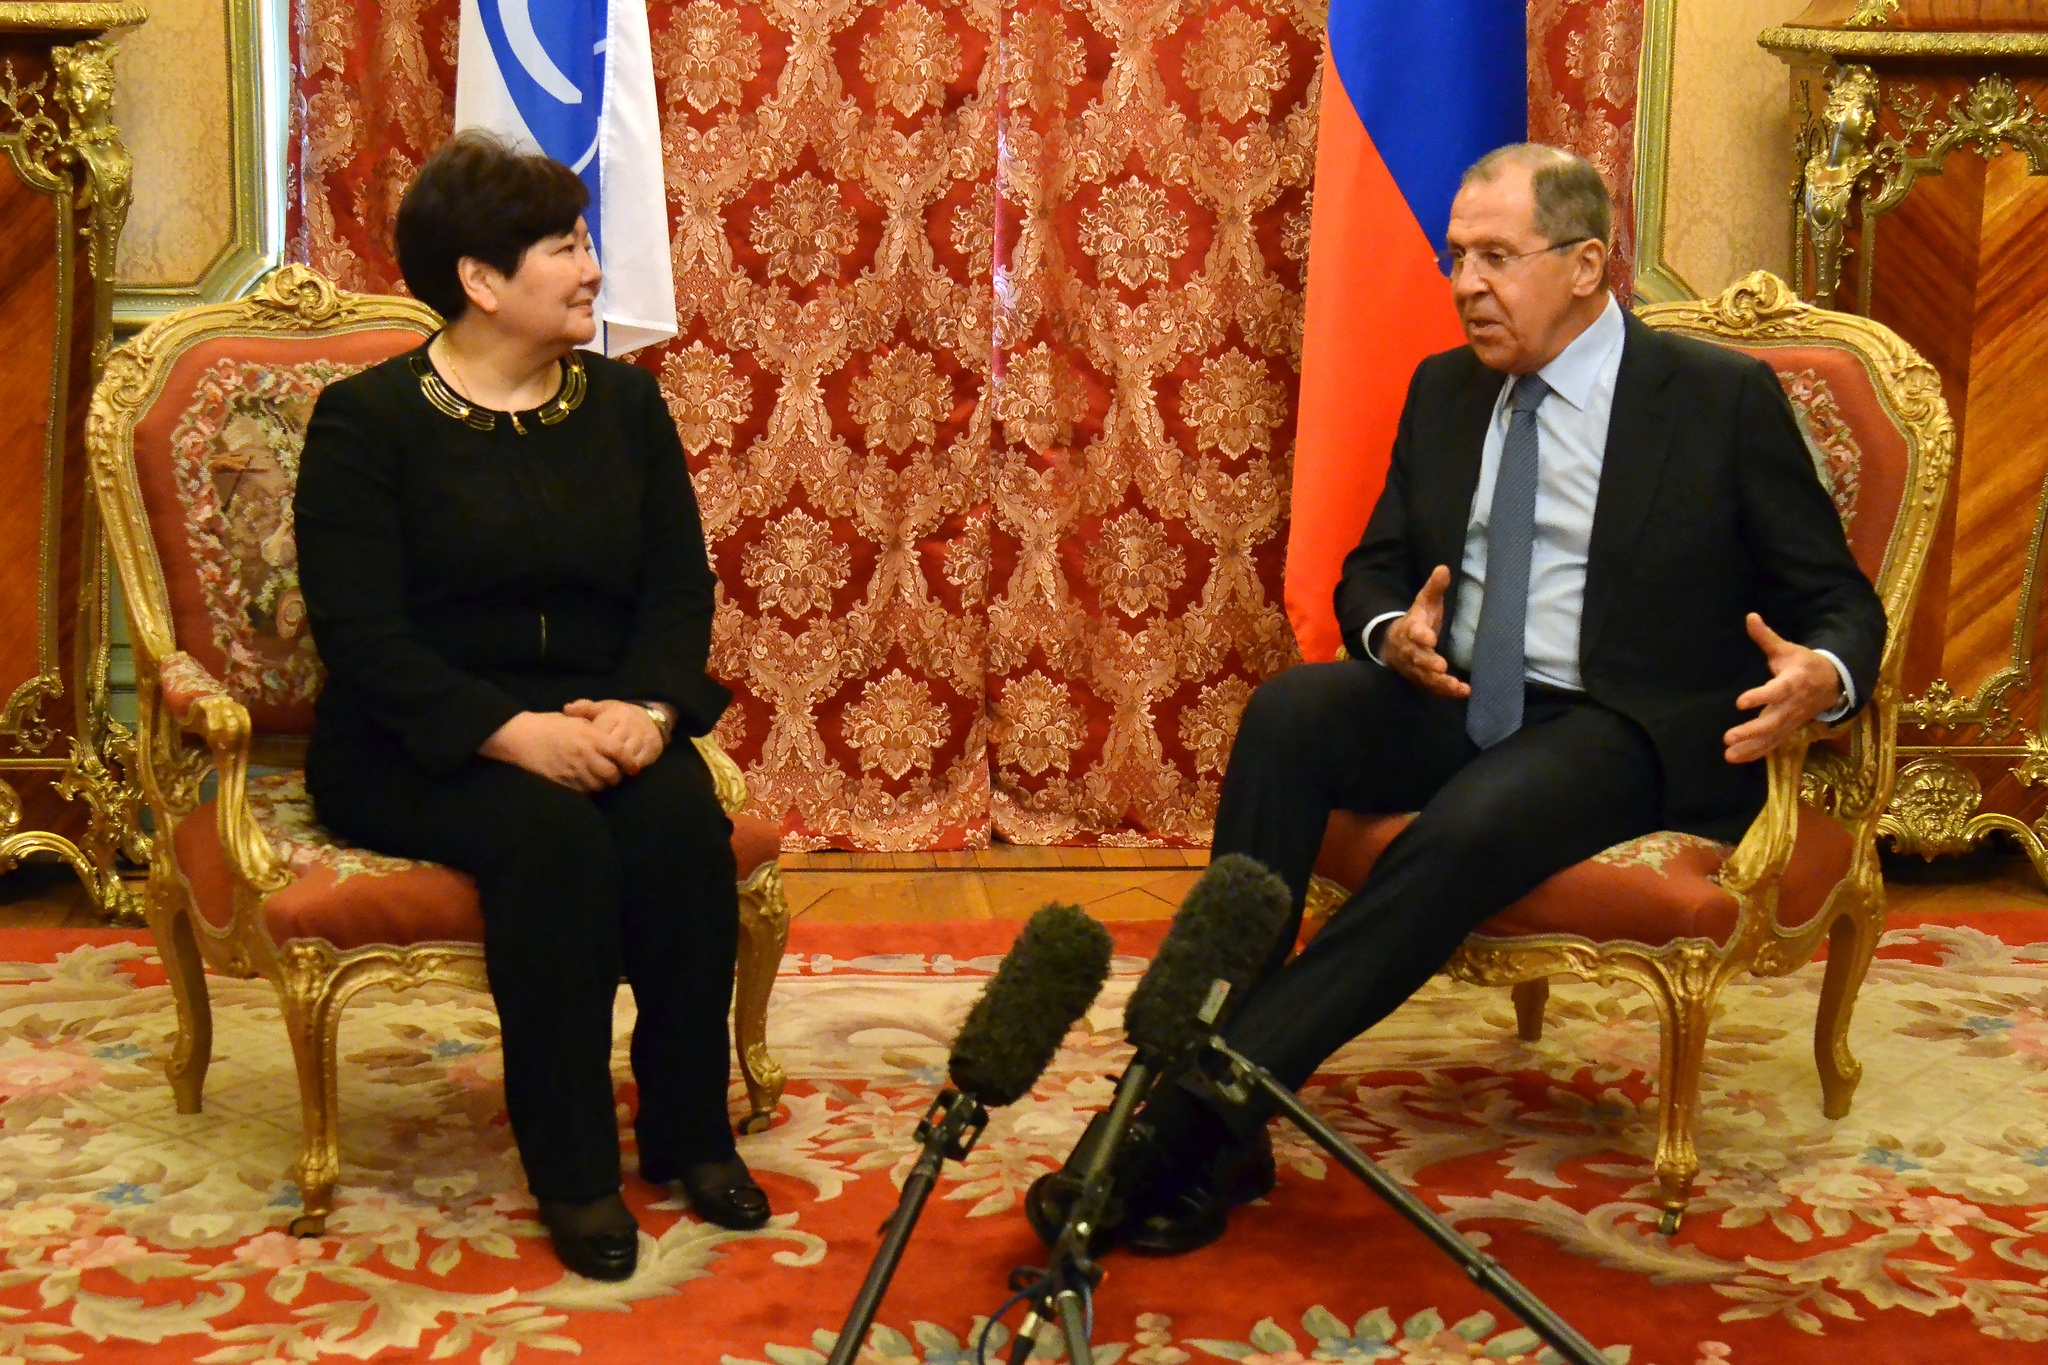 Russian Foreign Minister Sergey Lavrov during the meeting with the OSCE Special Representative and Coordinator for Combating Trafficking in Human Beings, Madina Jarbussynova.